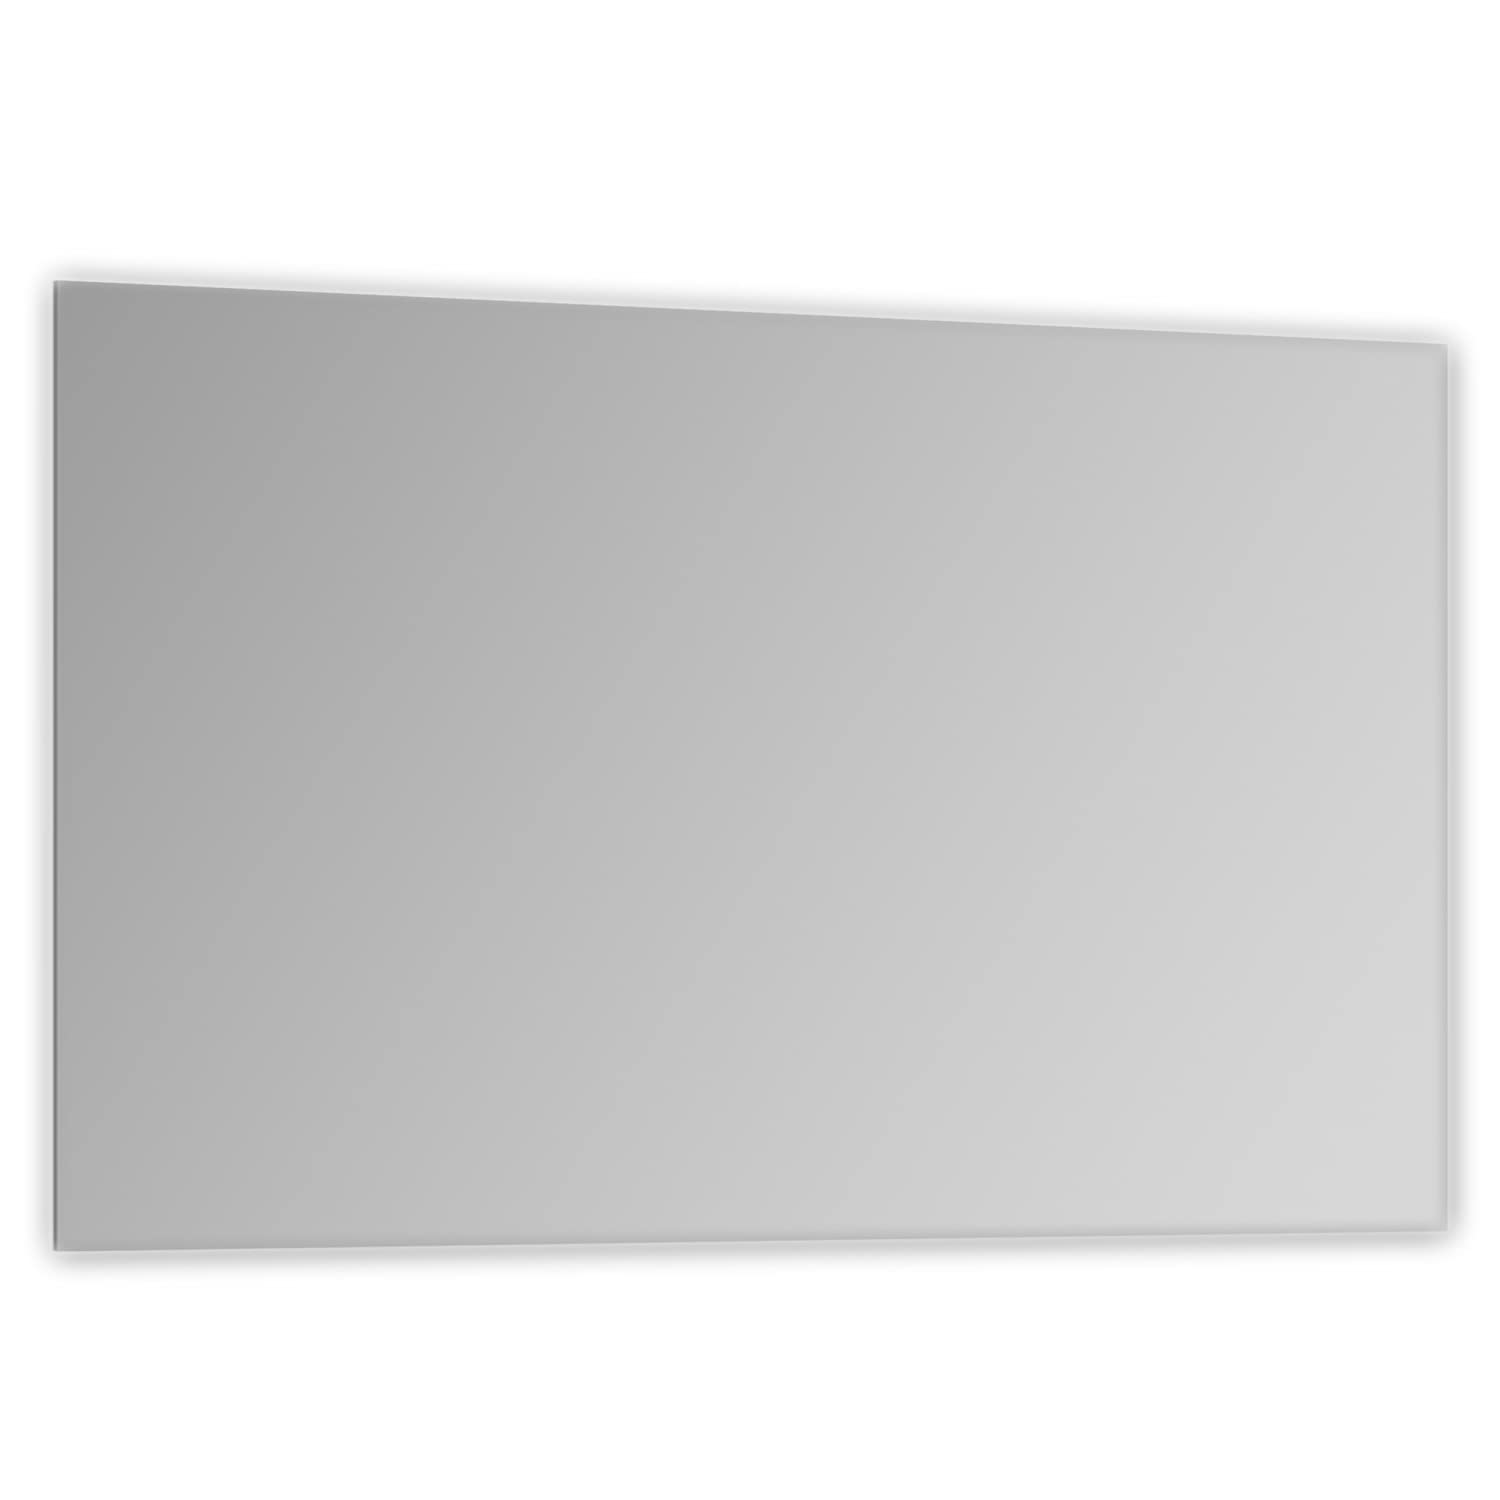 Eviva EVMR05-48X30 Mirrors, Glass